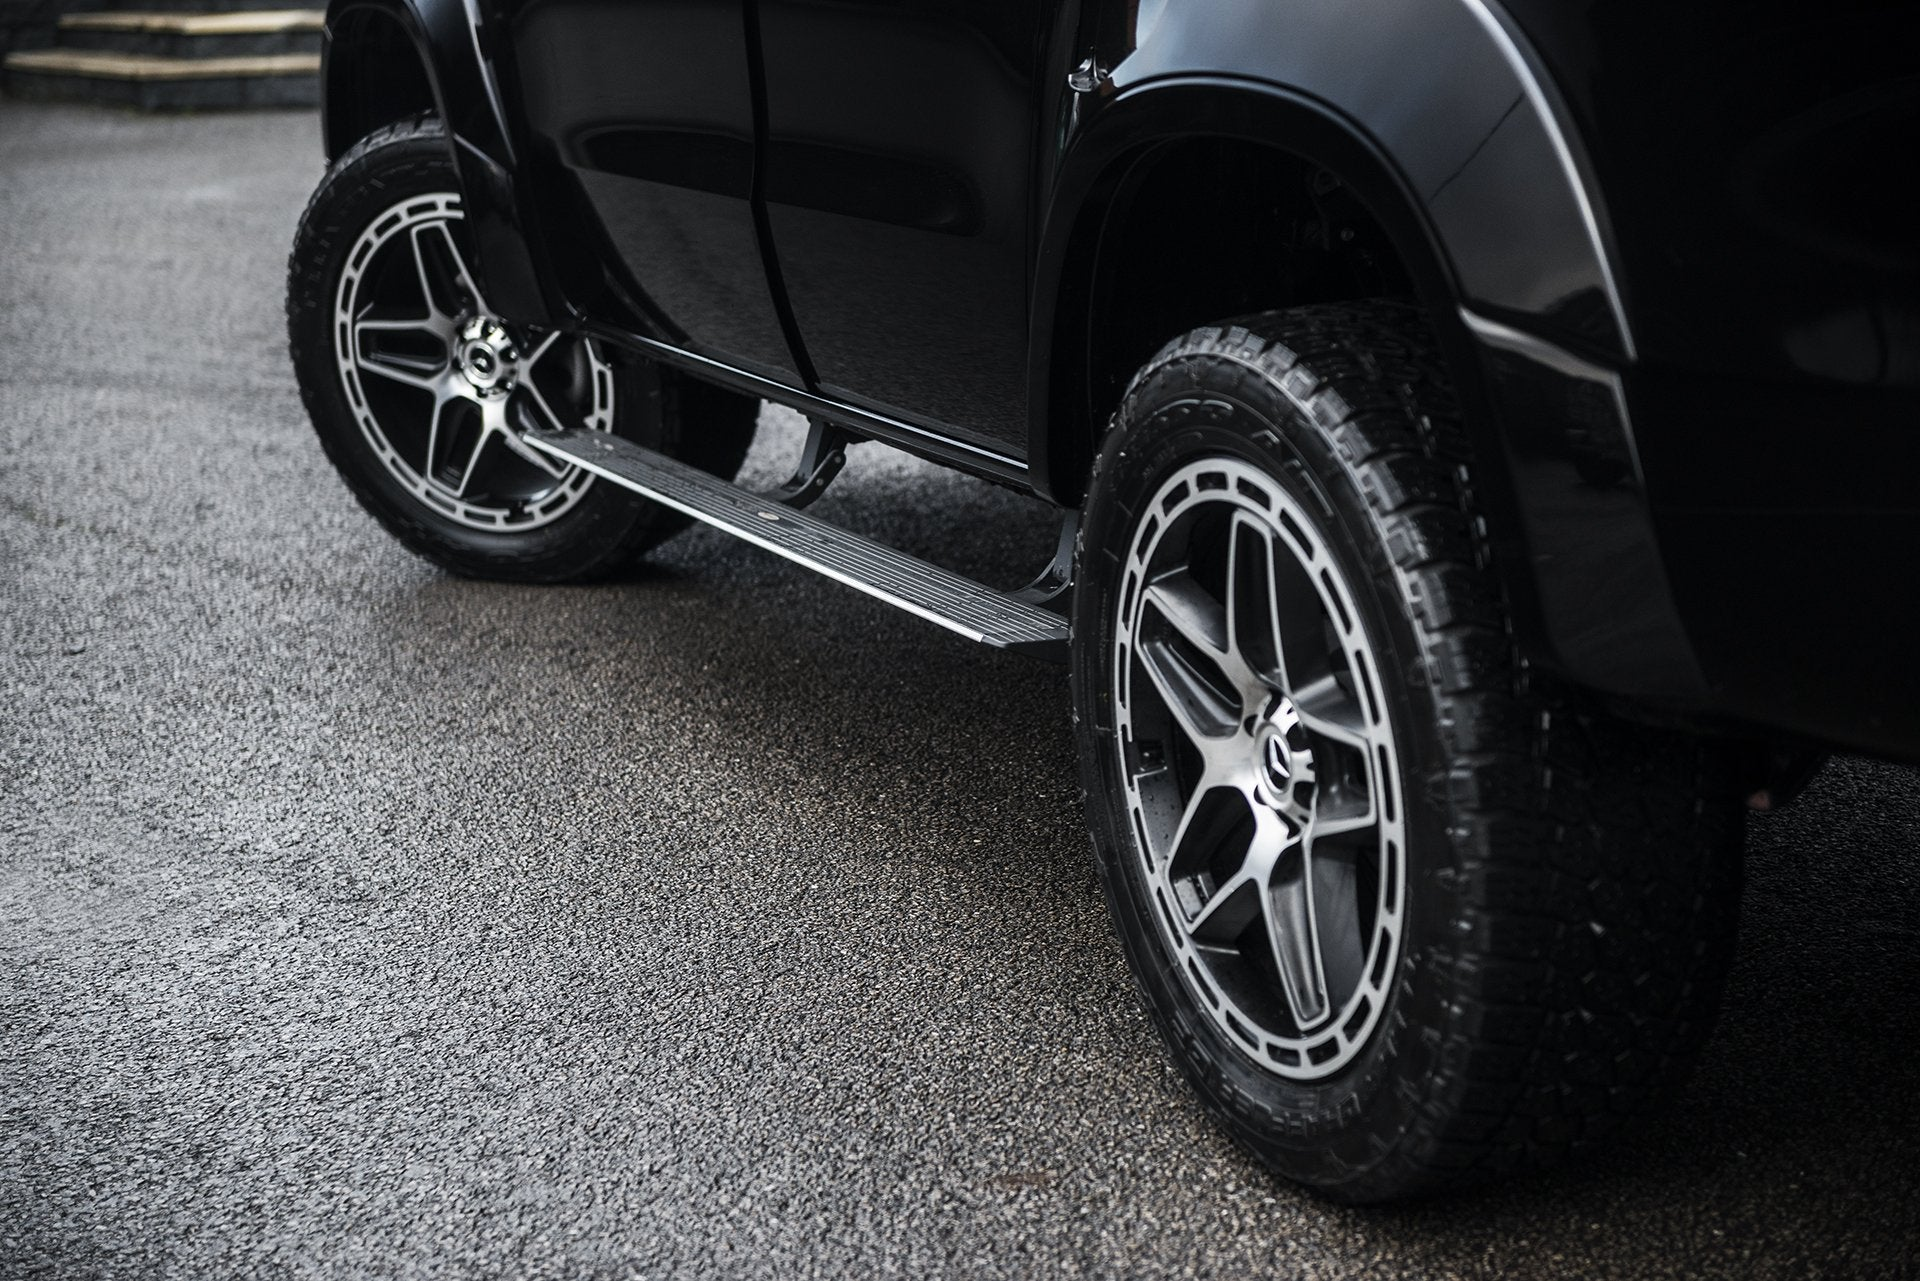 Mercedes X-Class (2019-Present) Deployable Electric Side Steps by Kahn - Image 2785